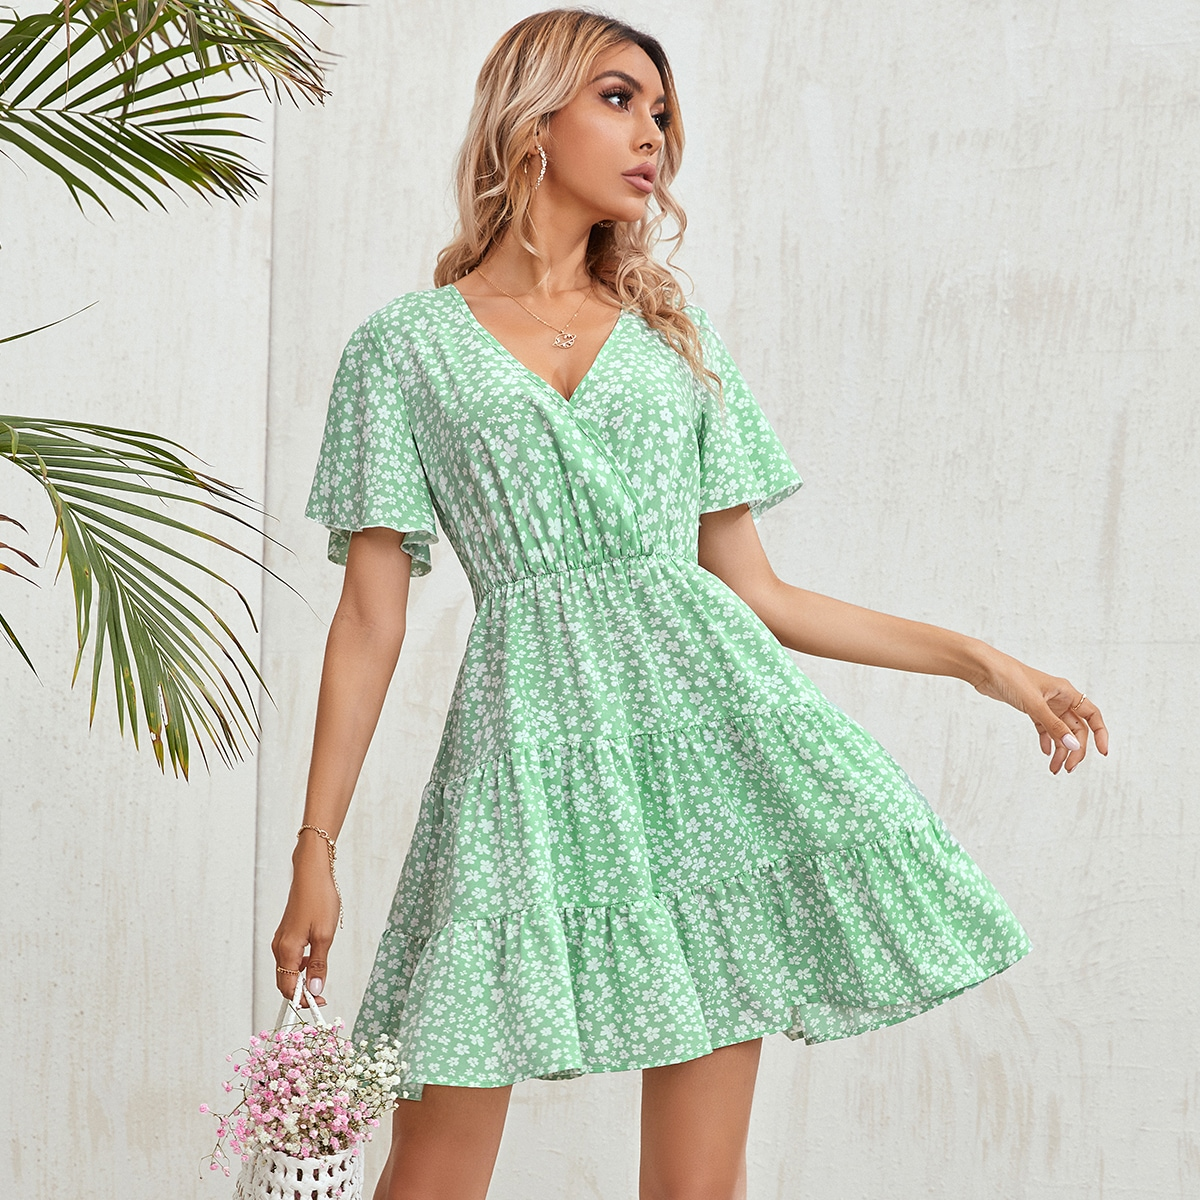 Surplice Neck Ruffle Hem Ditsy Floral Dress, SHEIN  - buy with discount